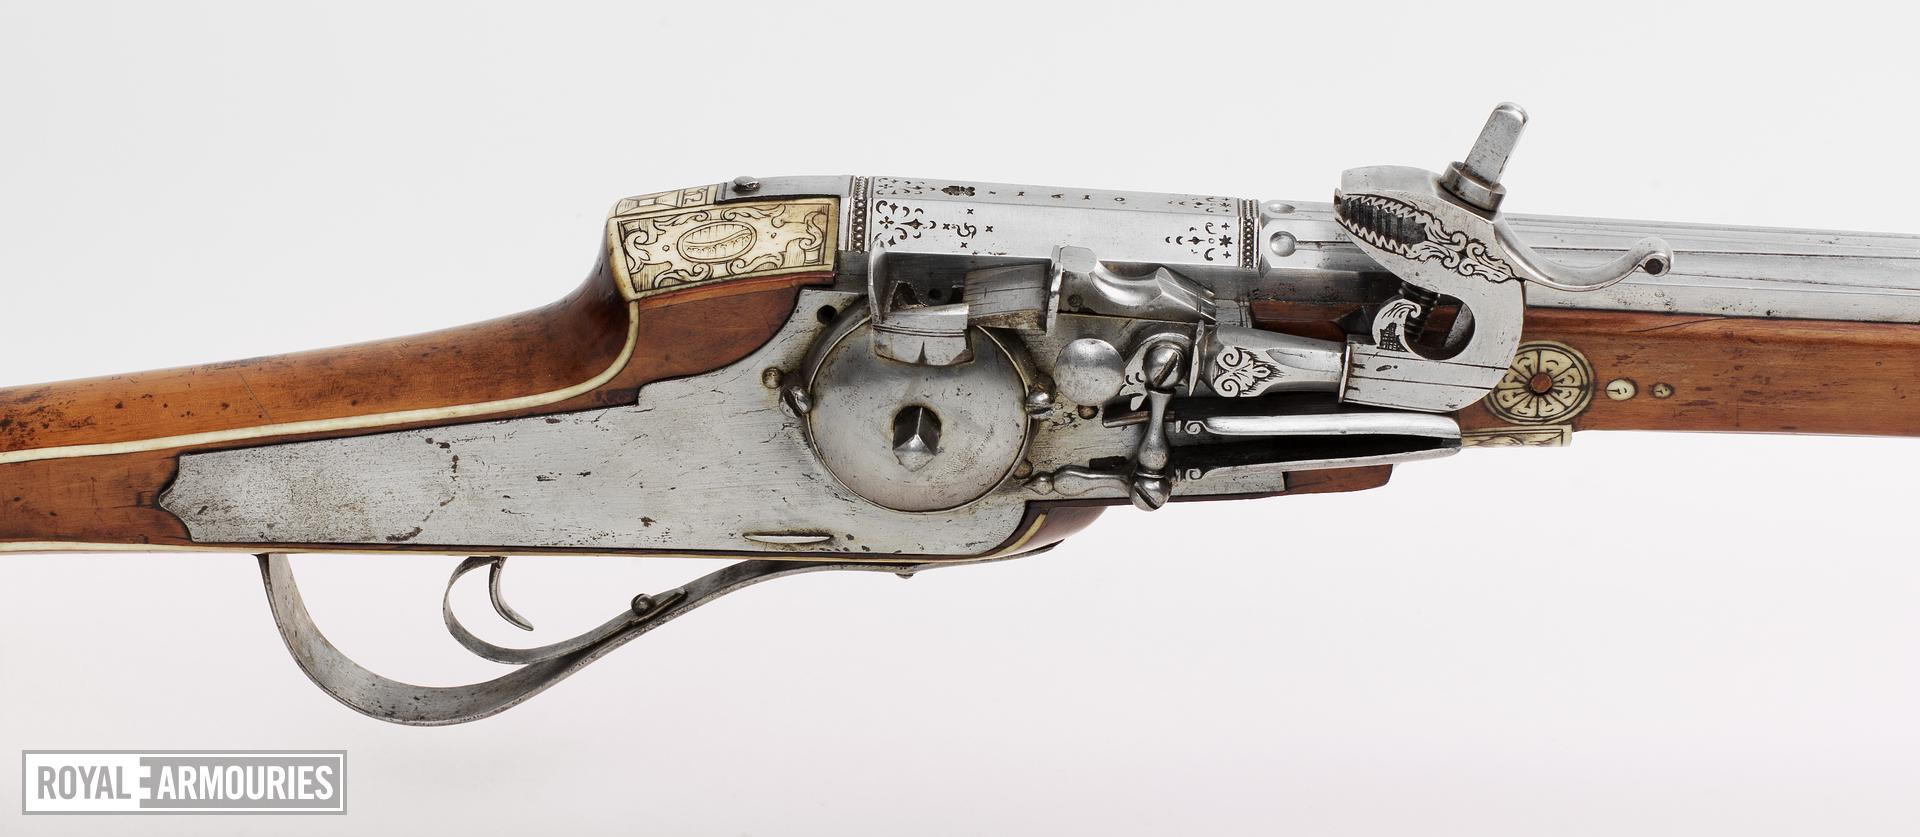 Wheellock muzzle-loading holster pistol - Barrel by Simon Helbig Made for the guards of the Elector Christian II of Saxony. One of a pair see XII.1257